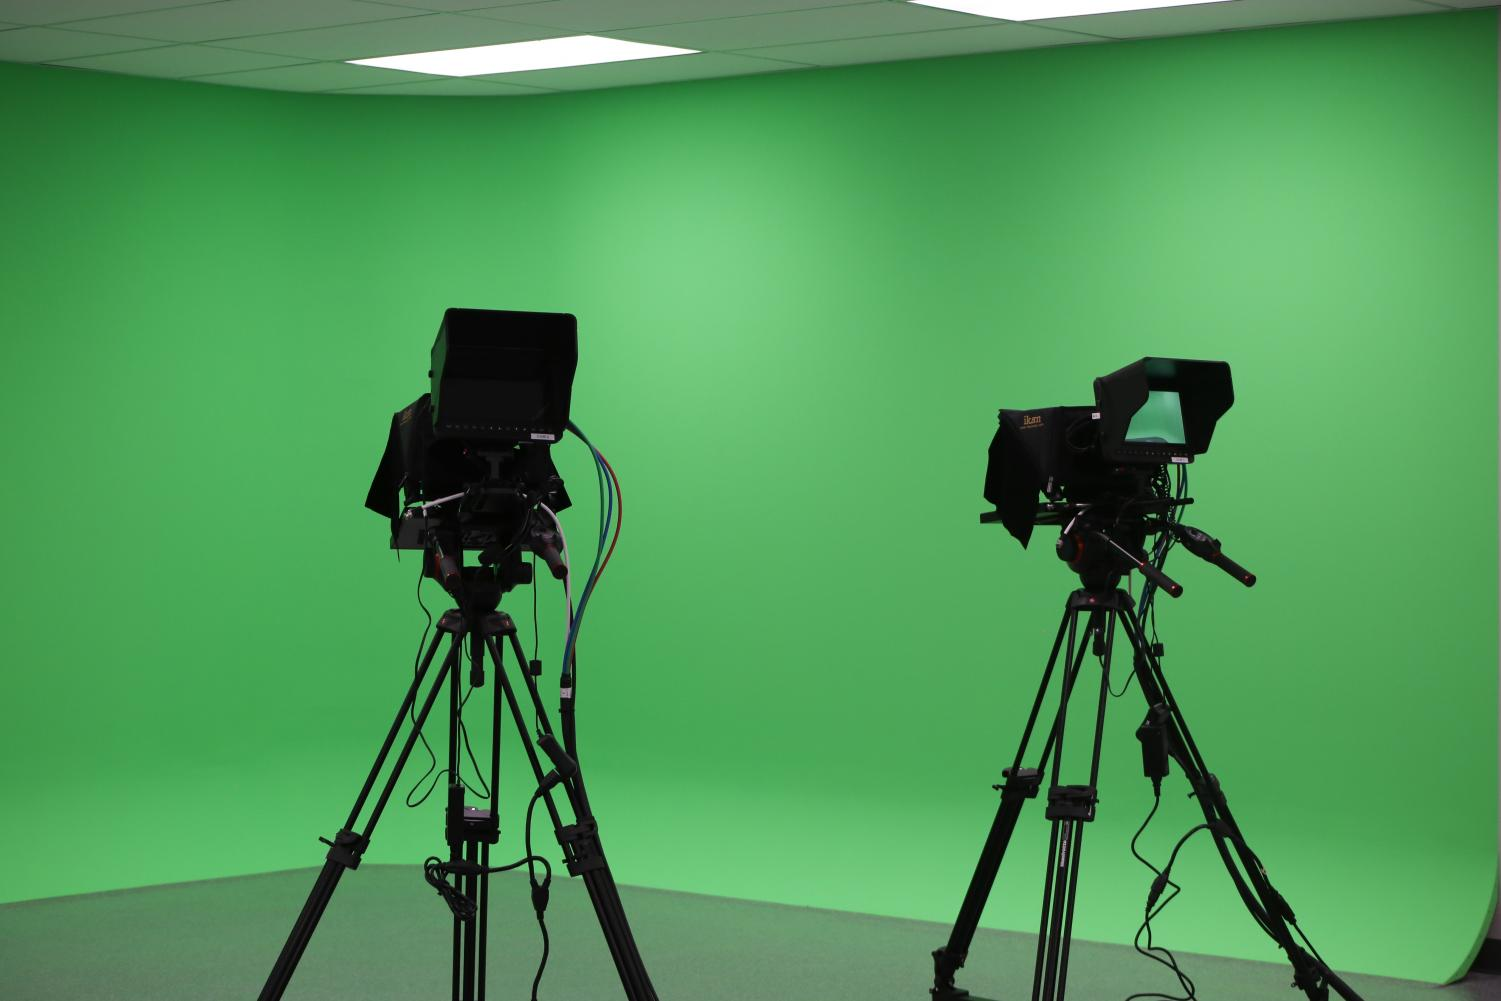 The+new+broadcasting+room+in+the+CTE+building+has+a+seamless+green+screen+wall.+The+seamless+wall+provides+a+higher+quality+video+broadcast+picture.